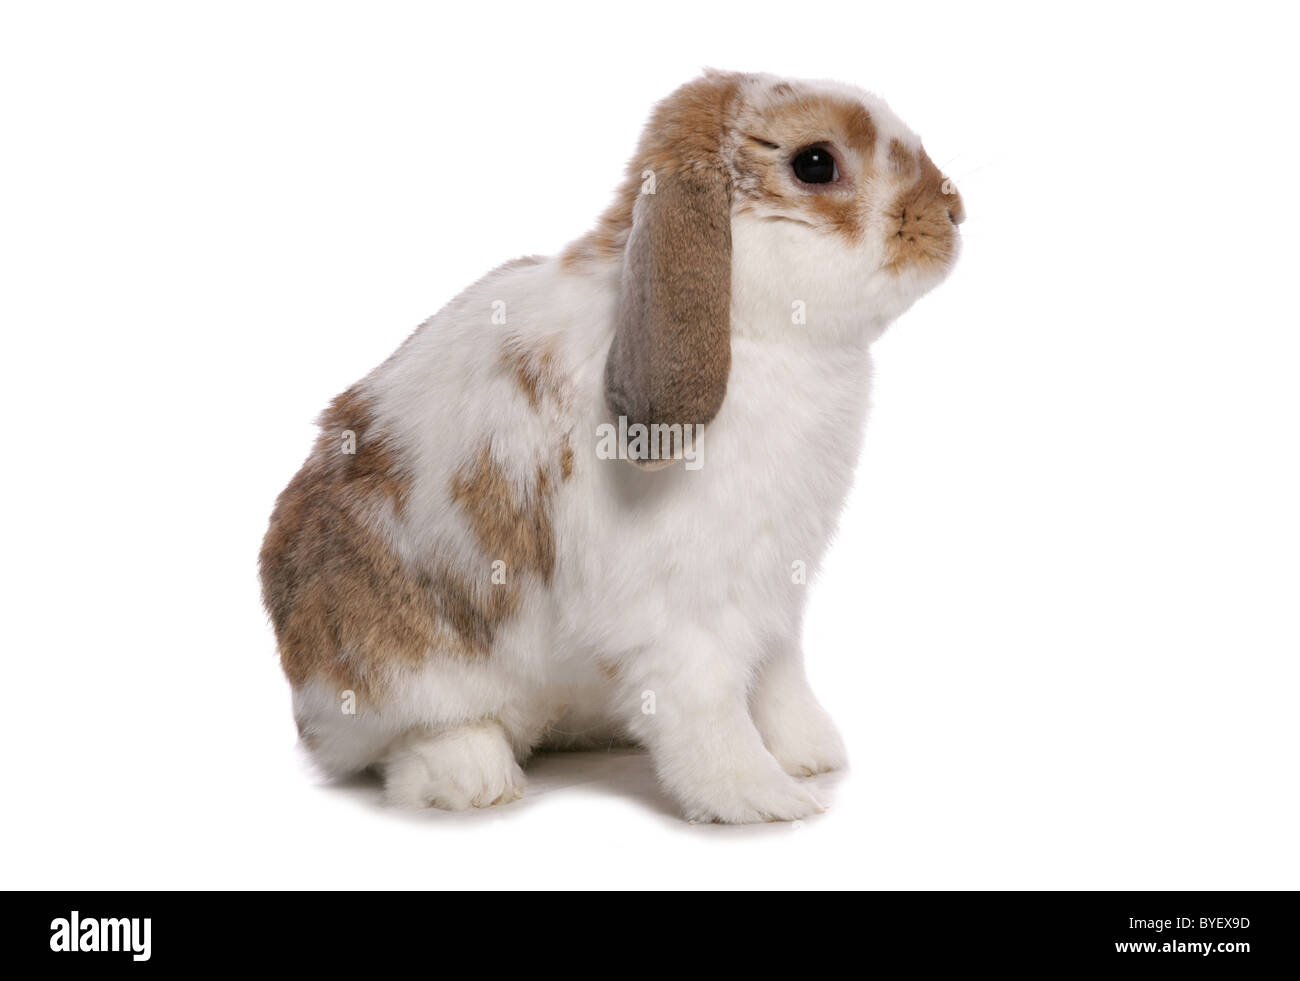 french lop eared rabbit sitting studio - Stock Image